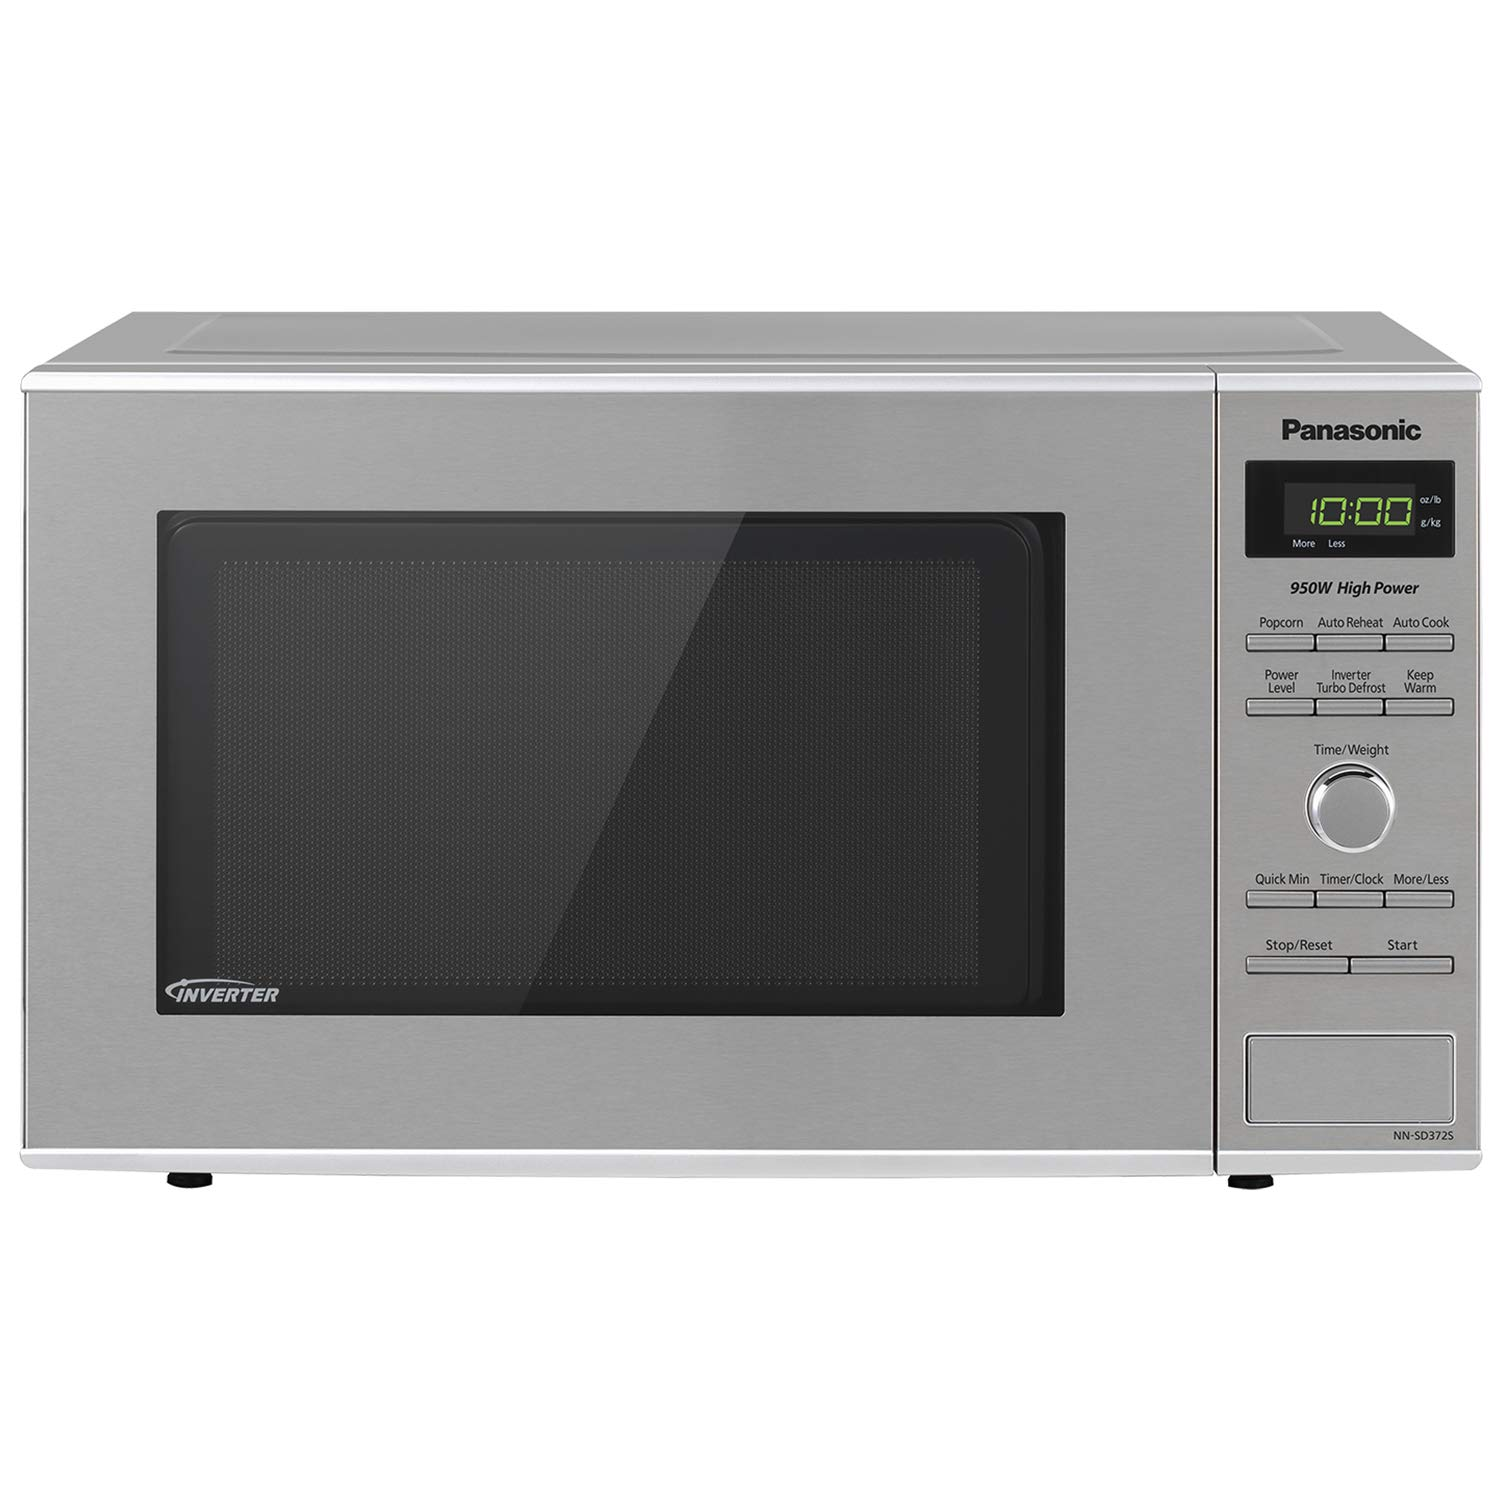 Top 10 Best Microwave Ovens (2020 Reviews & Buying Guide) 3